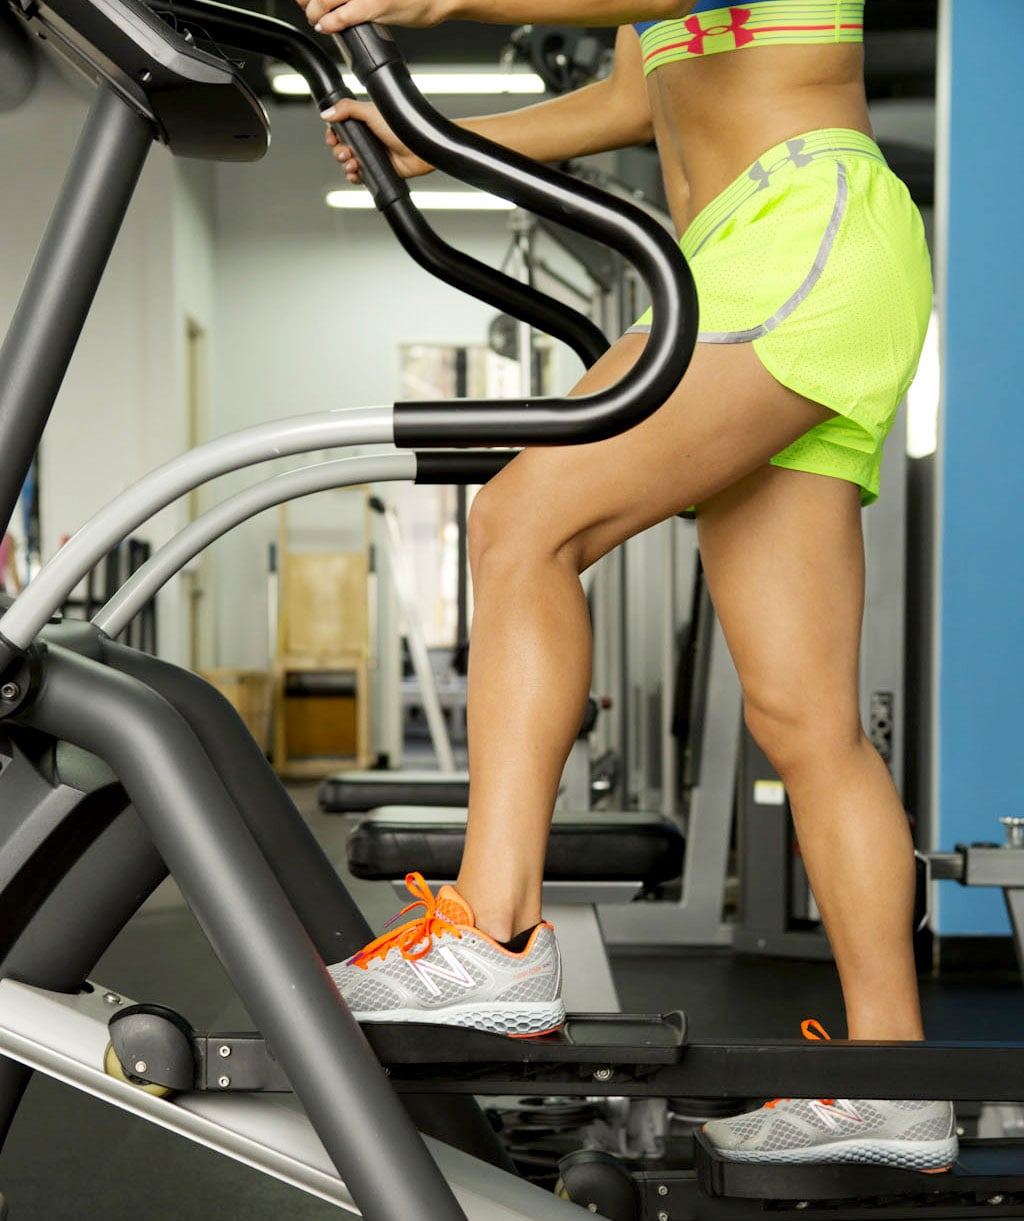 Home Exercise Equipment For Beginners: Best Beginner Cardio Workouts